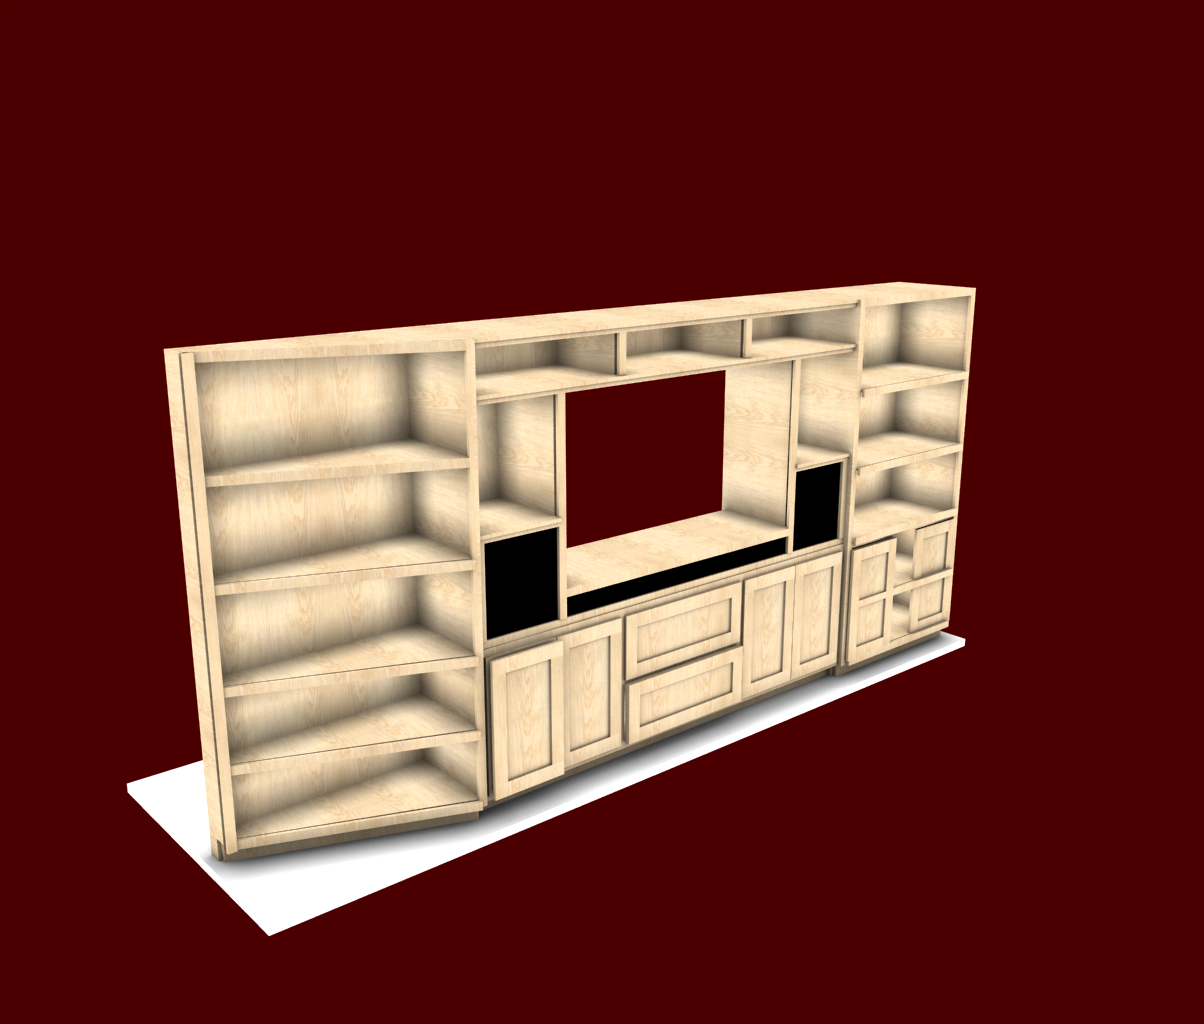 3D Software for Furniture, Cabinets, Woodworking, Remodeling